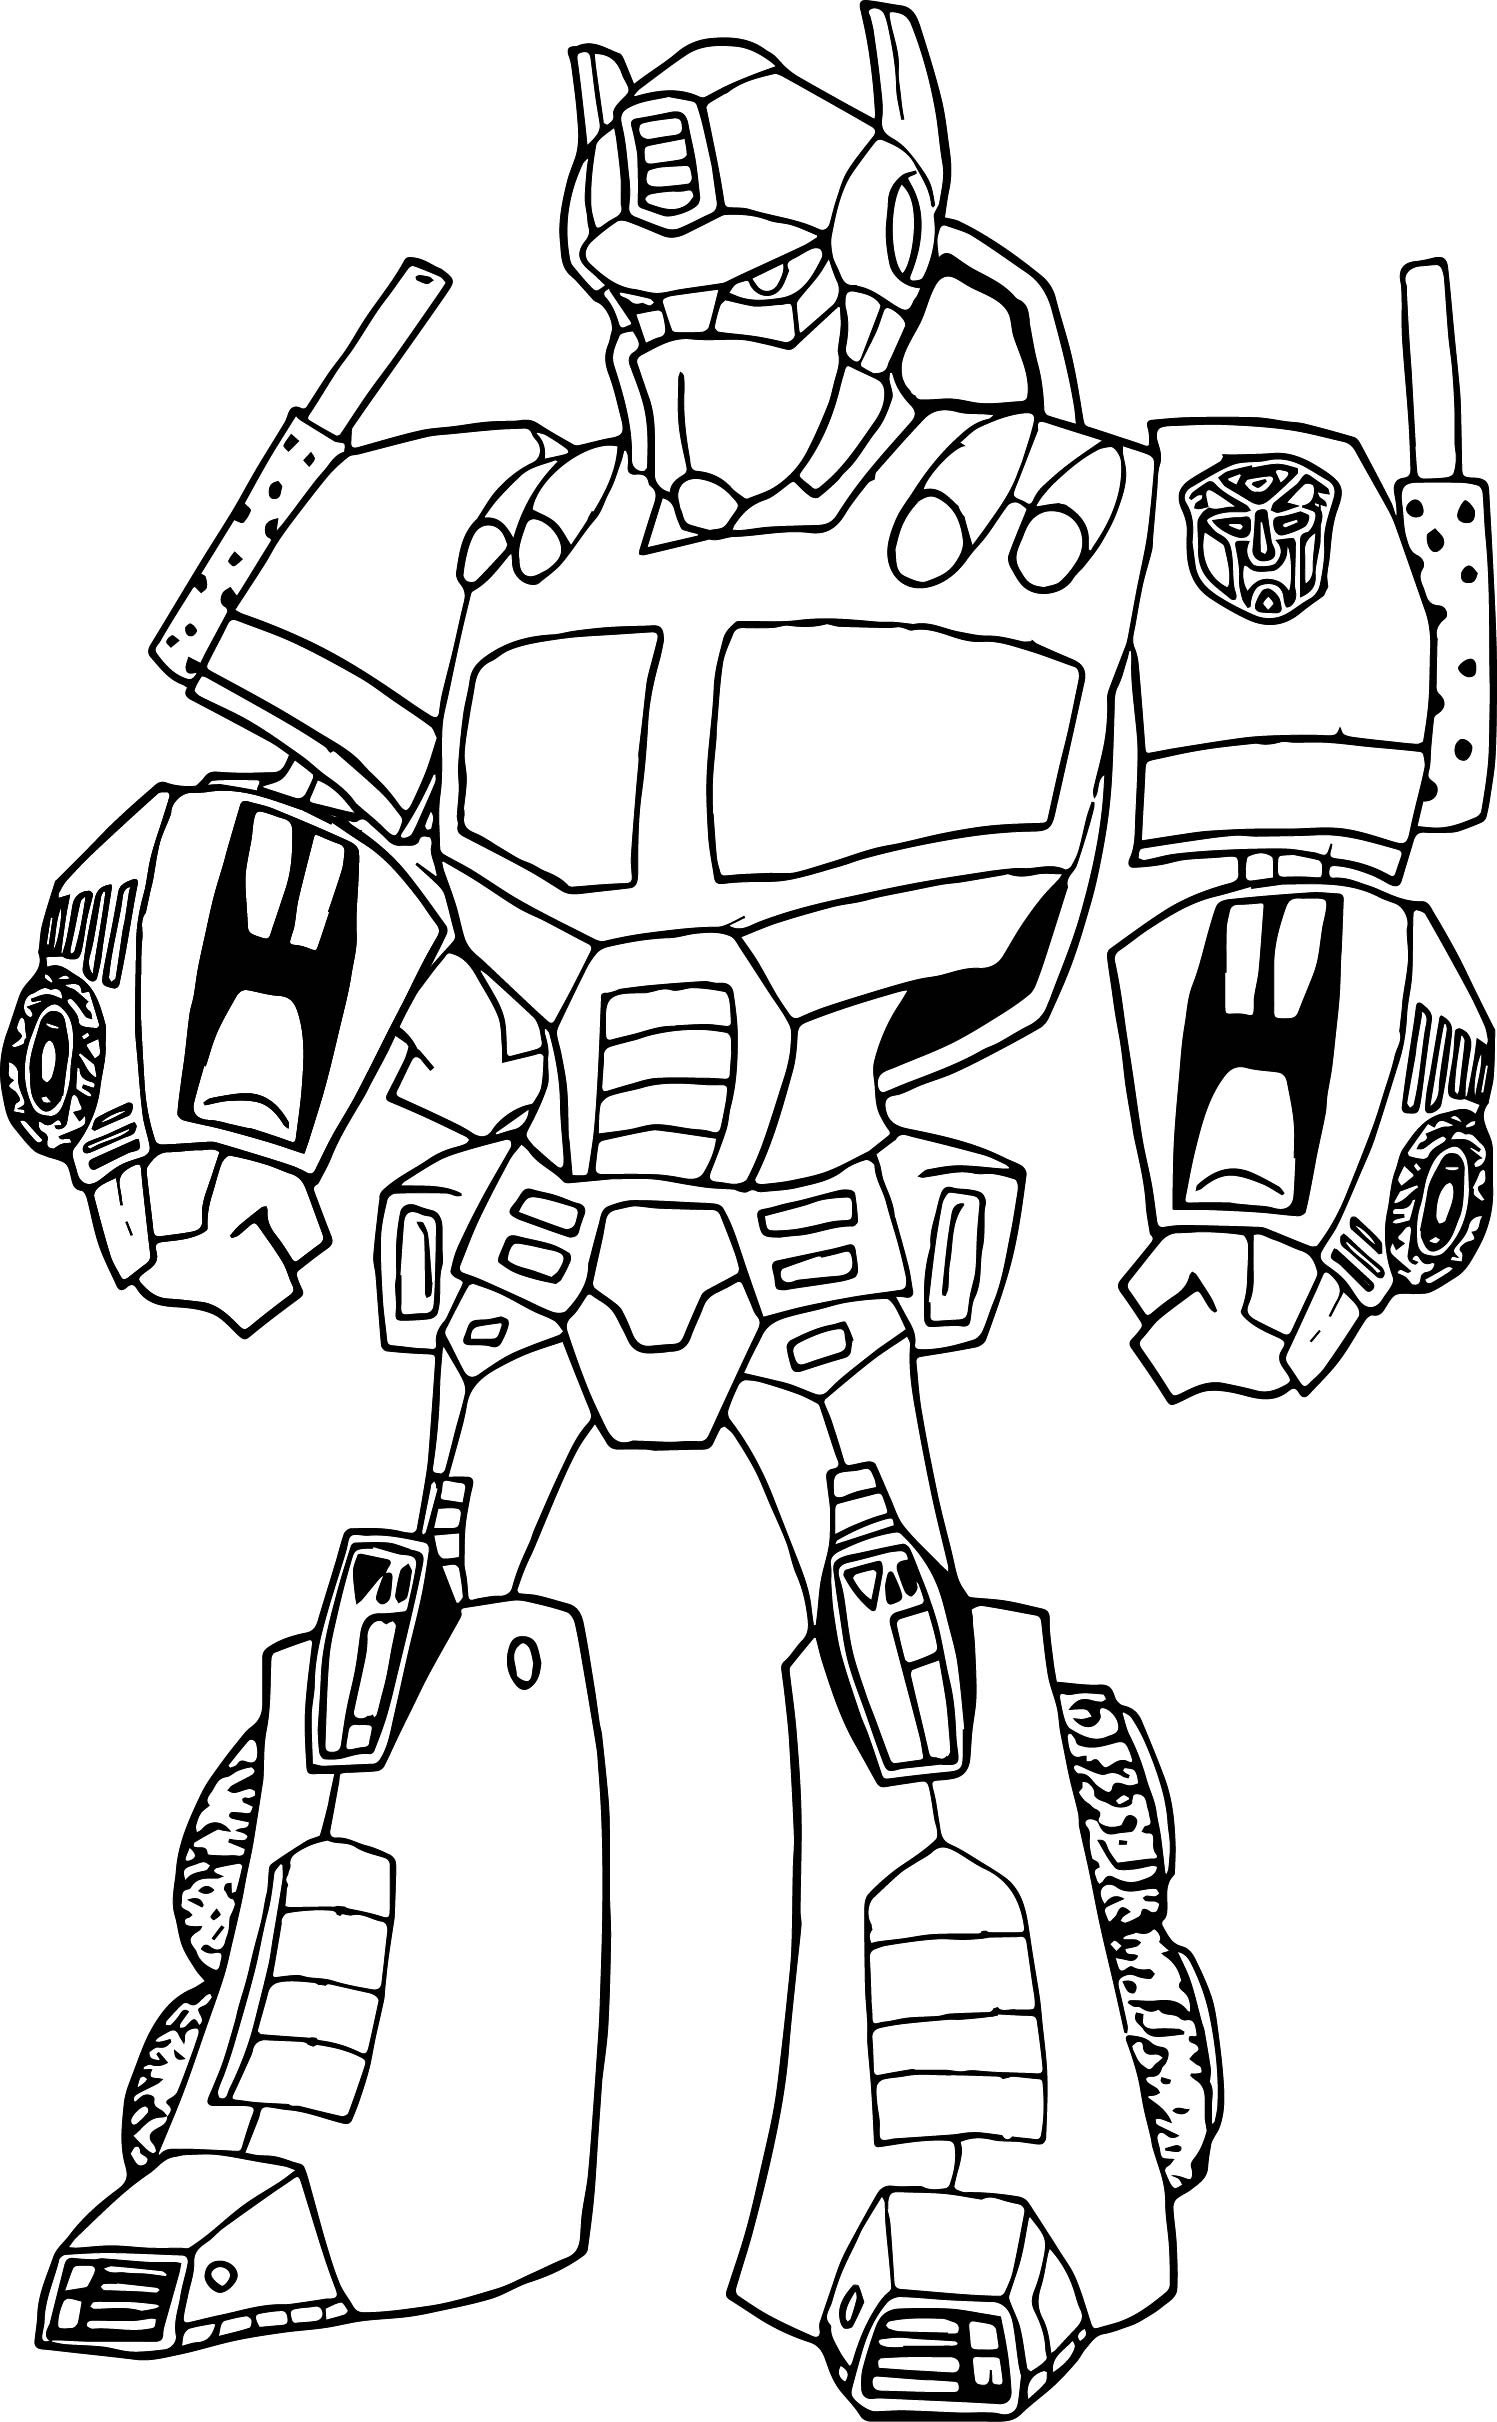 optimus prime animated coloring pages | Mewarnai Lego Nexo Knights - Mewarnai s